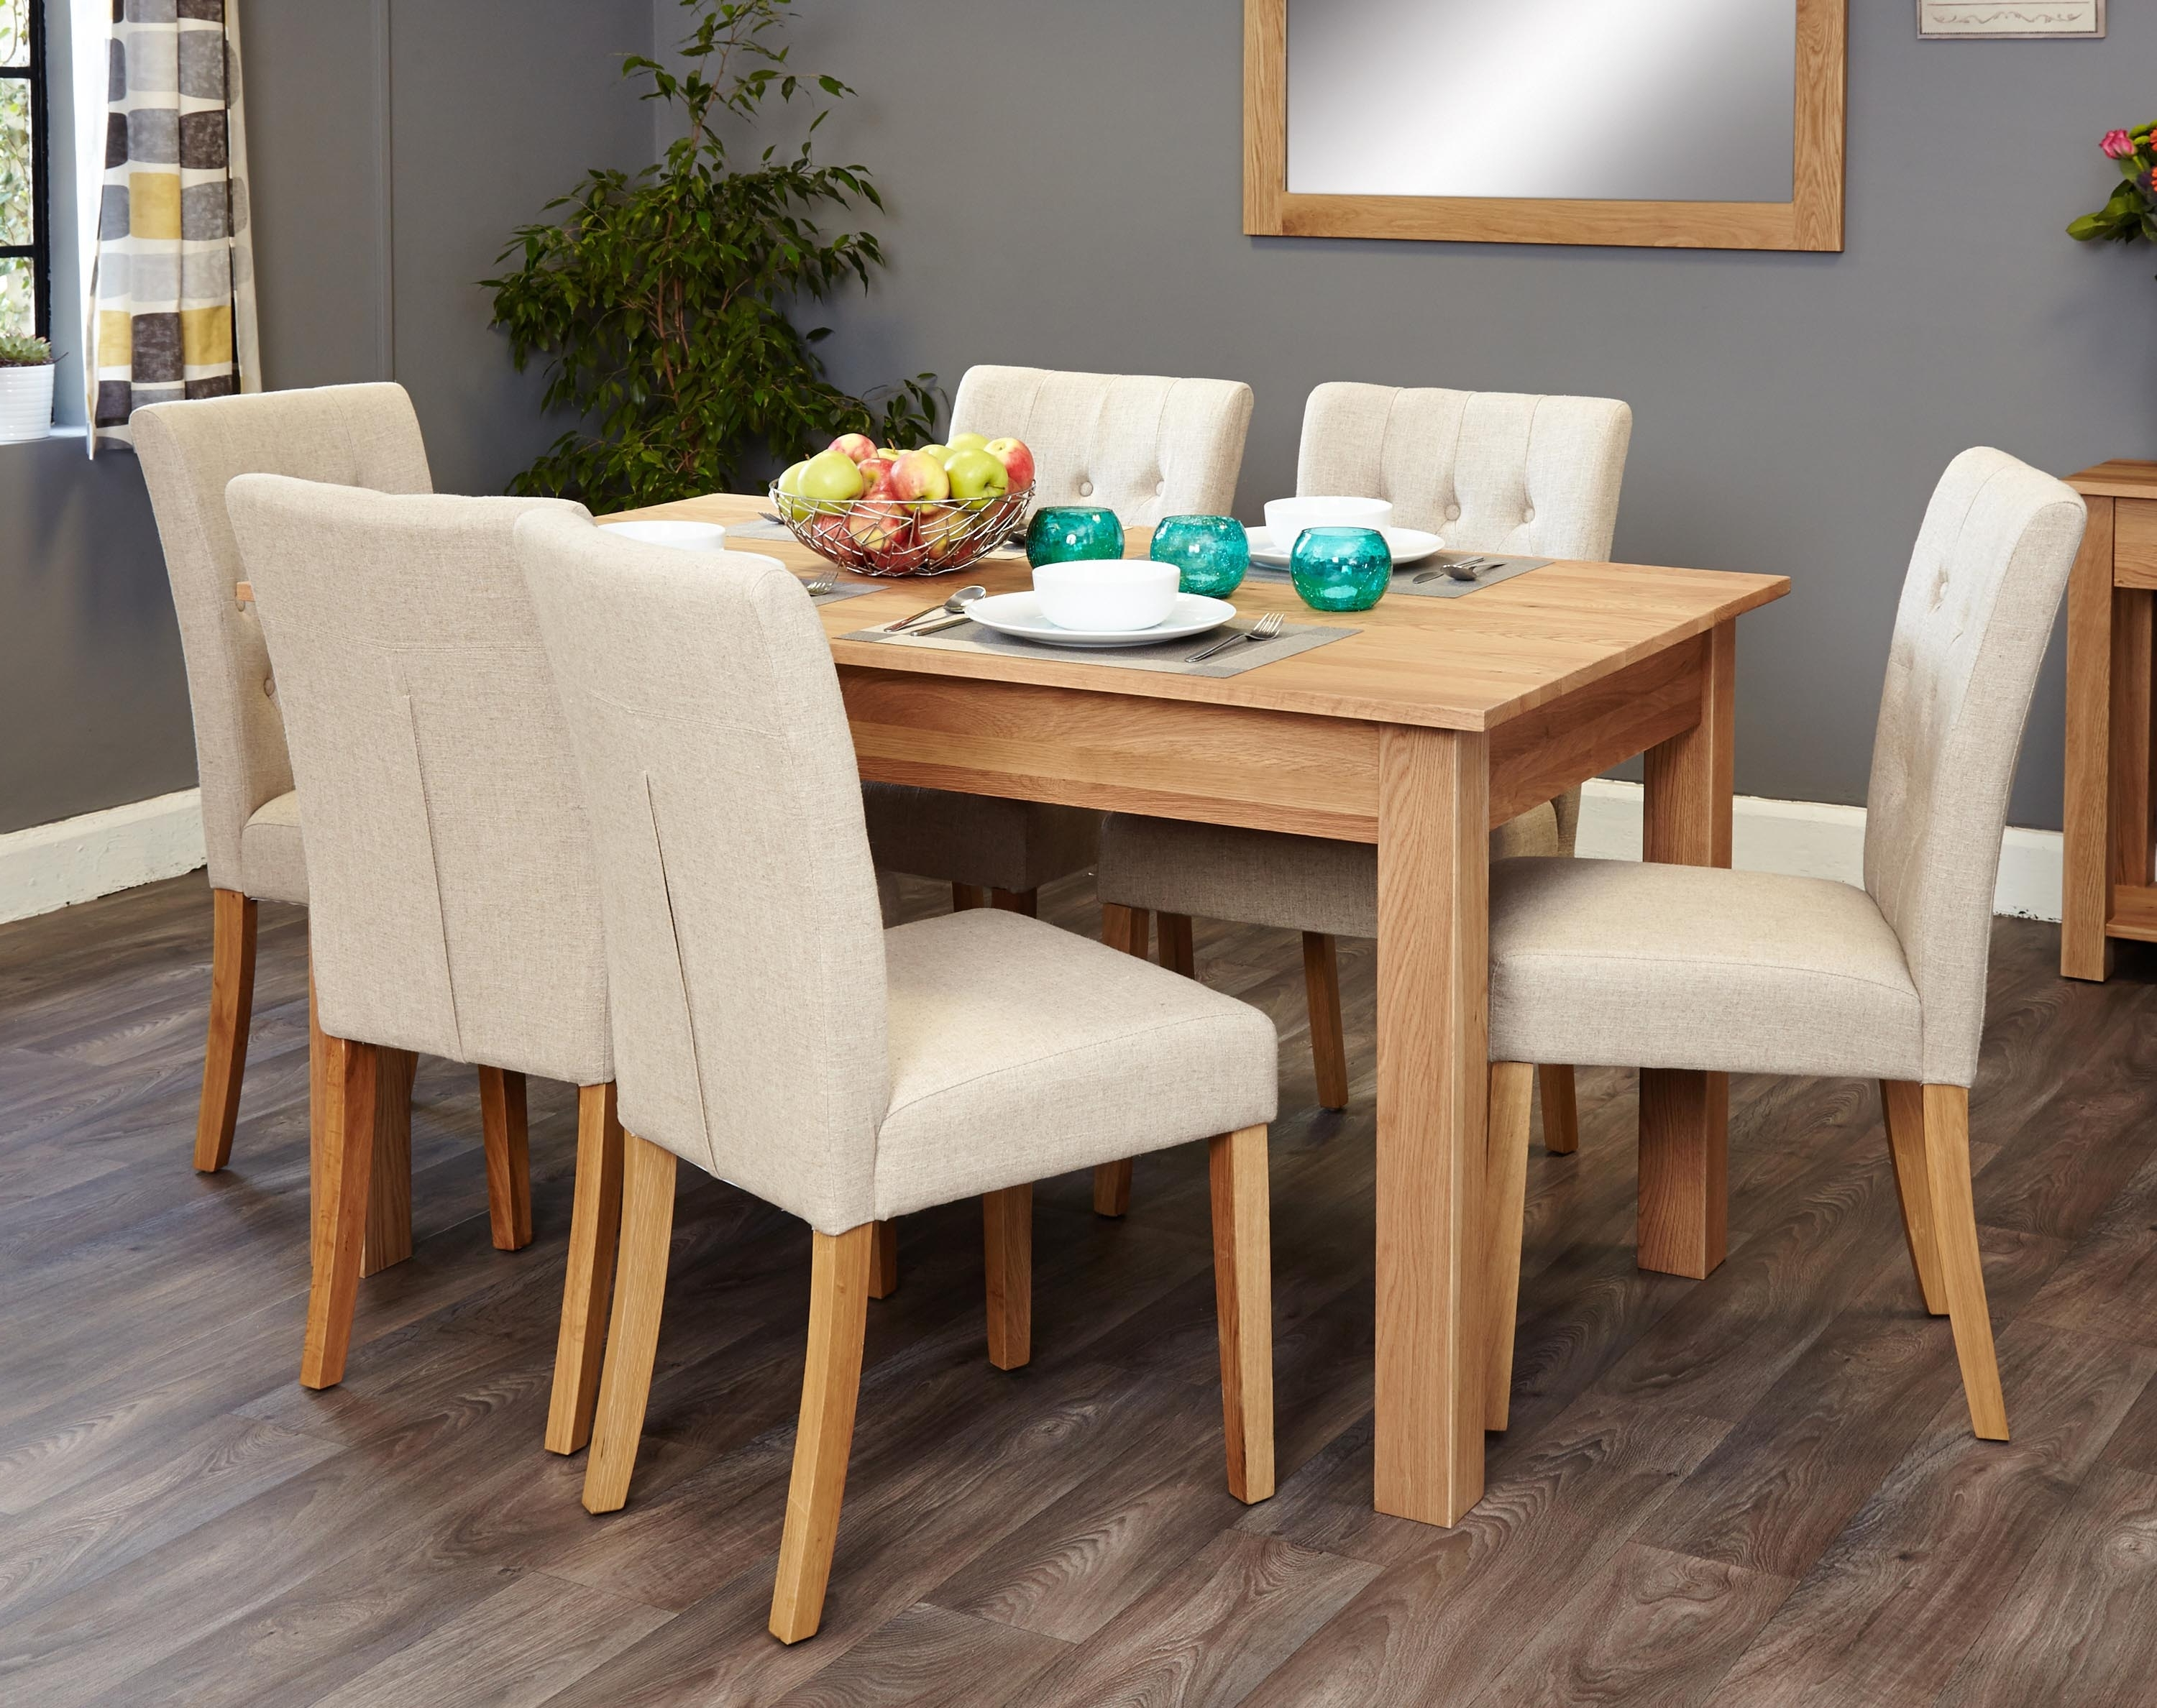 Mobel Oak 6 Seater Dining Table Set (Biscuit Flare Back) (Socor04B For Trendy Oak 6 Seater Dining Tables (View 8 of 25)